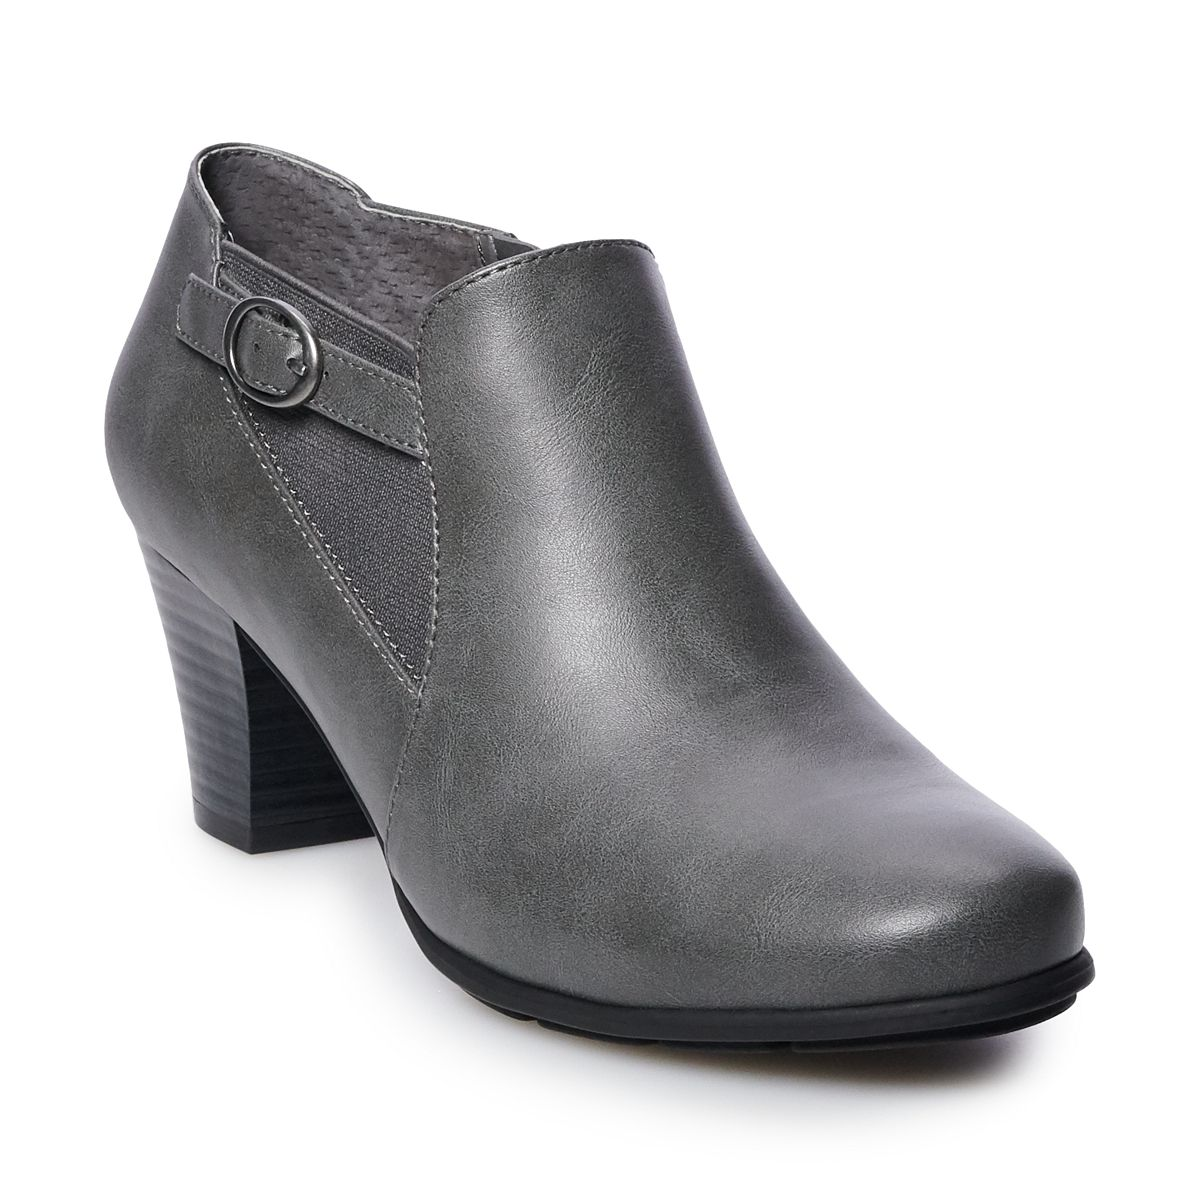 Croft & Barrow Ines Womens Ankle Boots